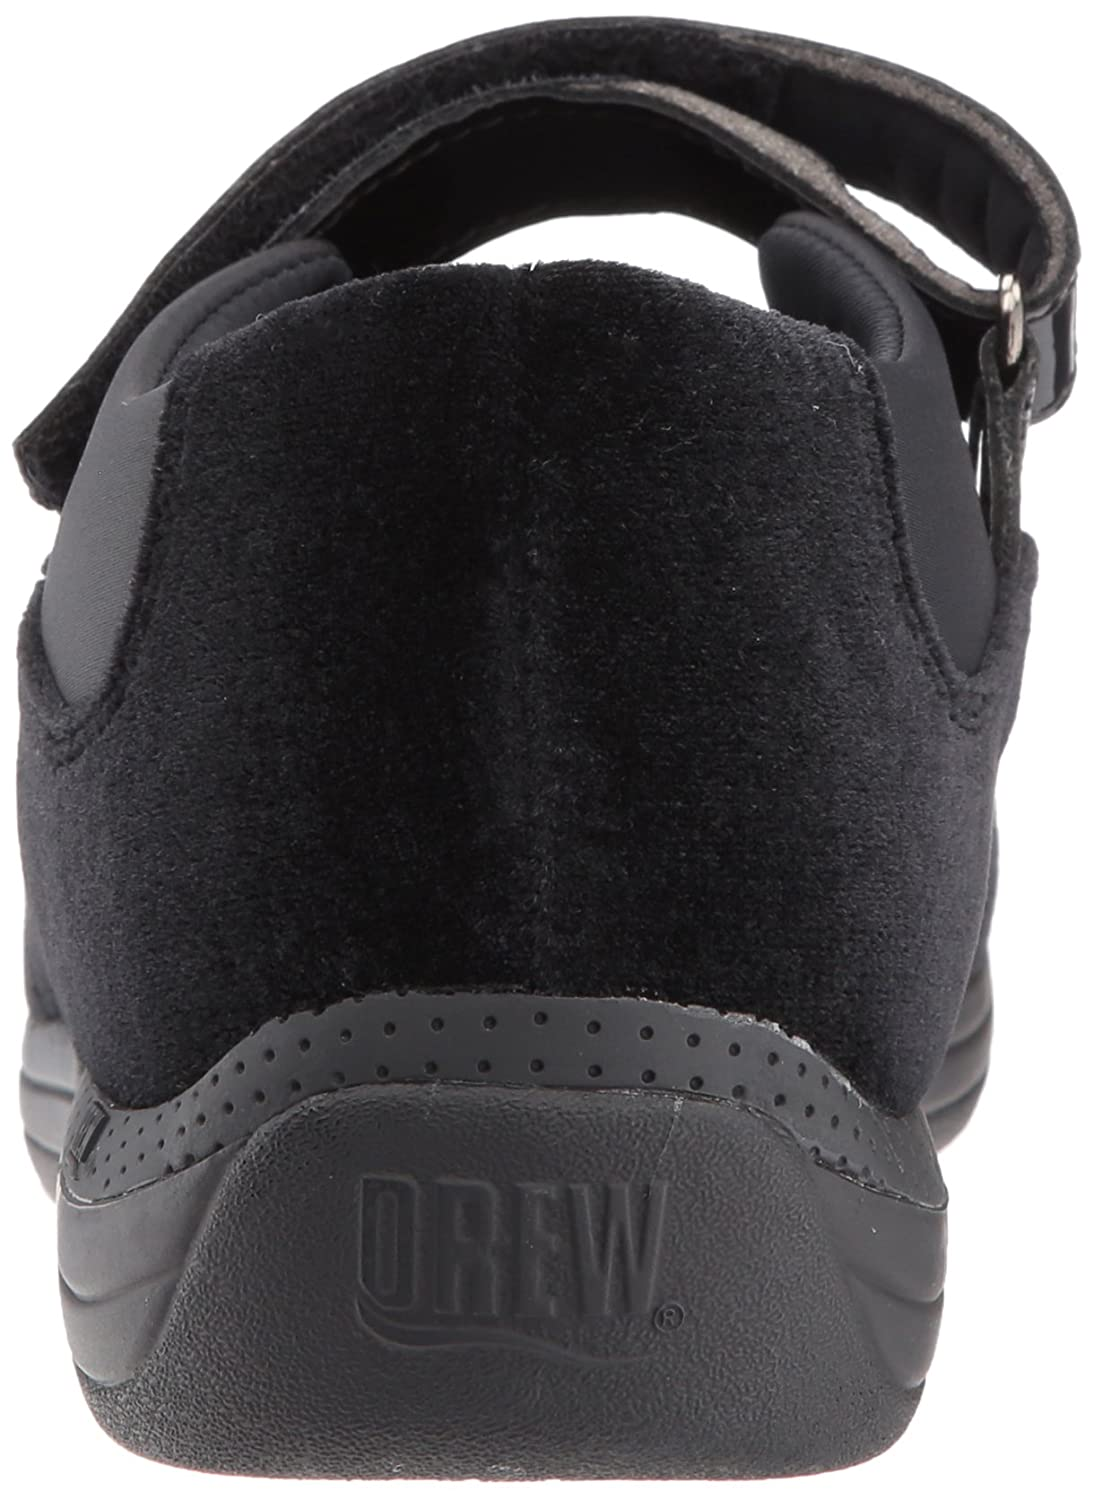 Drew Shoe Women's US|Black Rose Mary Jane B073ZNLTR2 8.5 XW US|Black Women's Velvet Patent d2061c